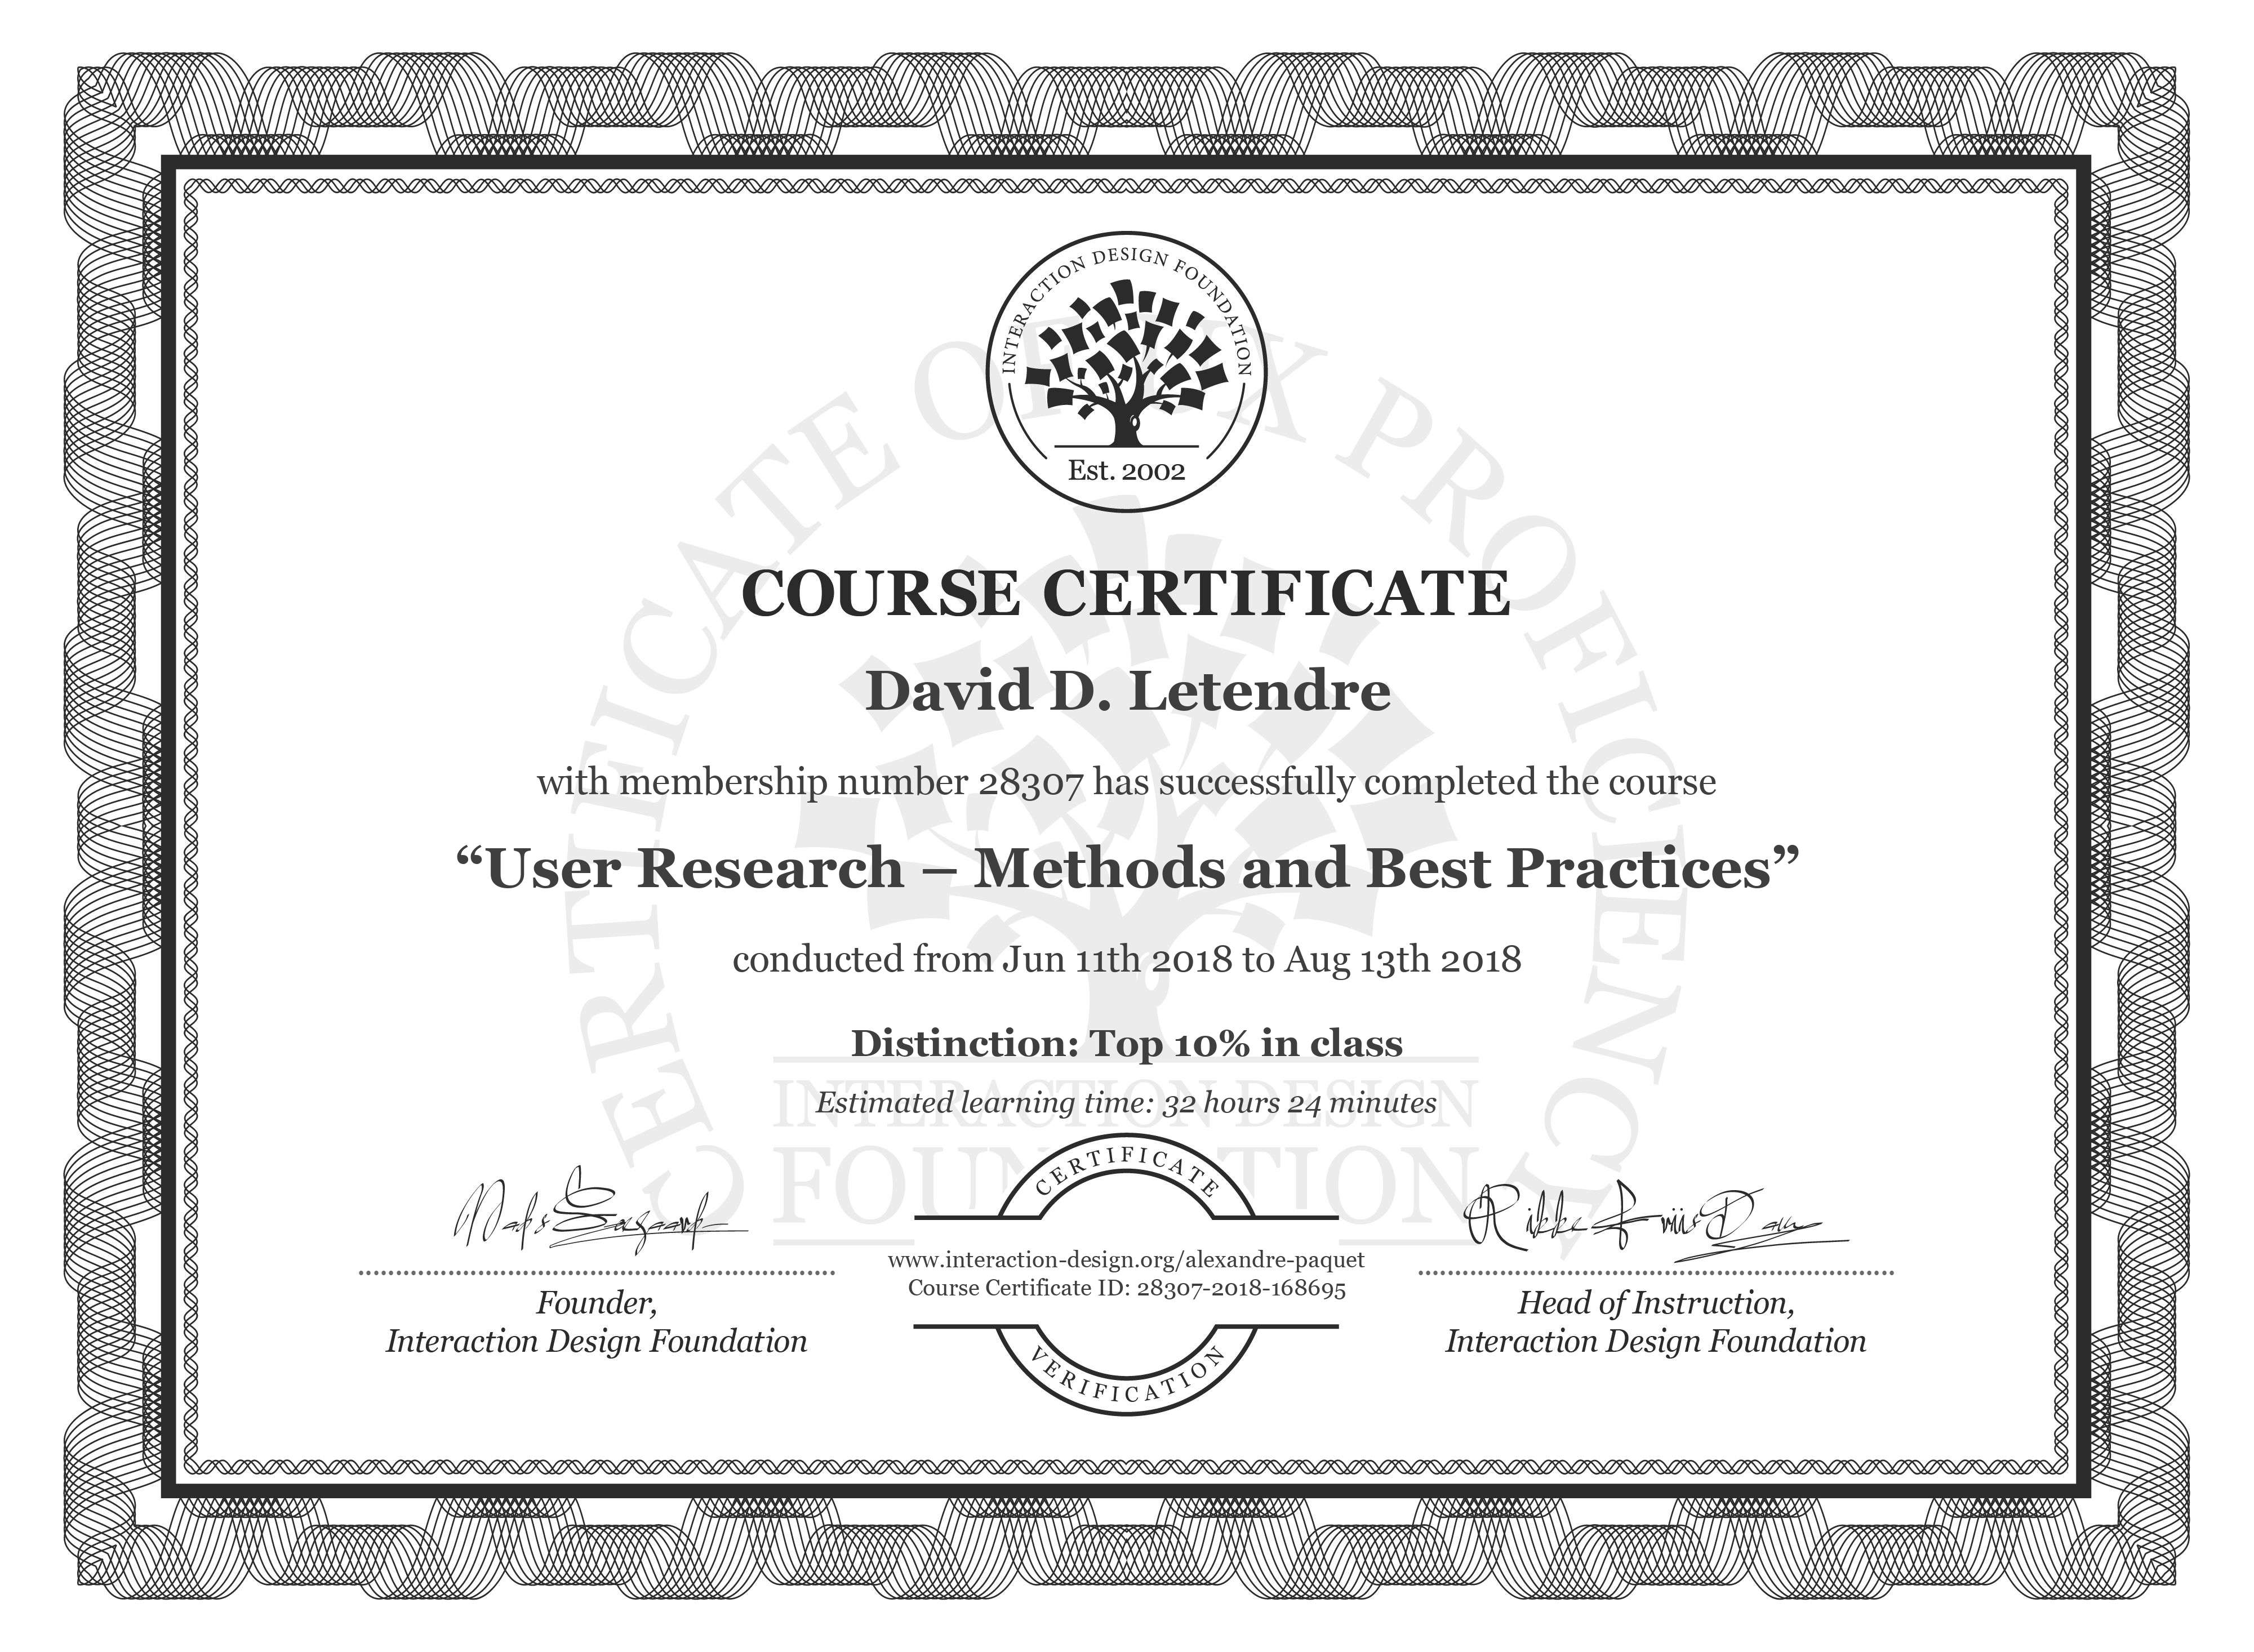 David D. Letendre: Course Certificate - User Research – Methods and Best Practices